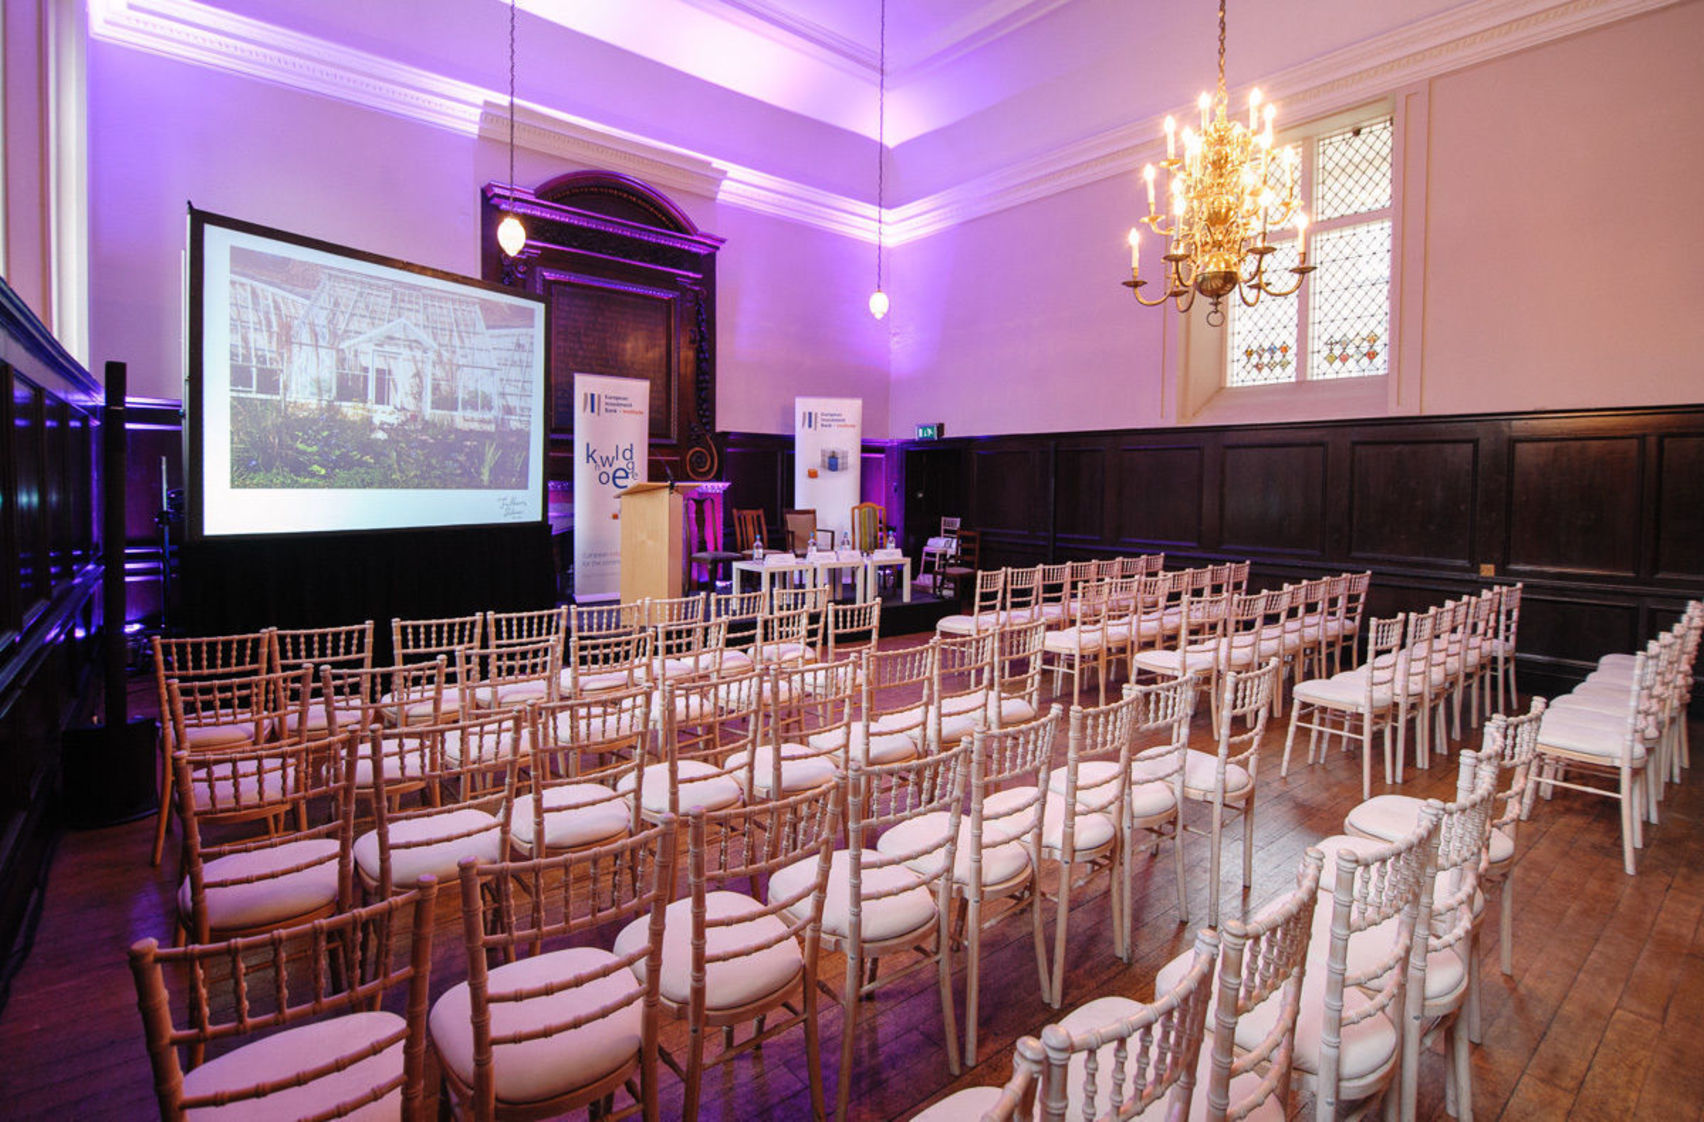 The Great Hall, Fulham Palace